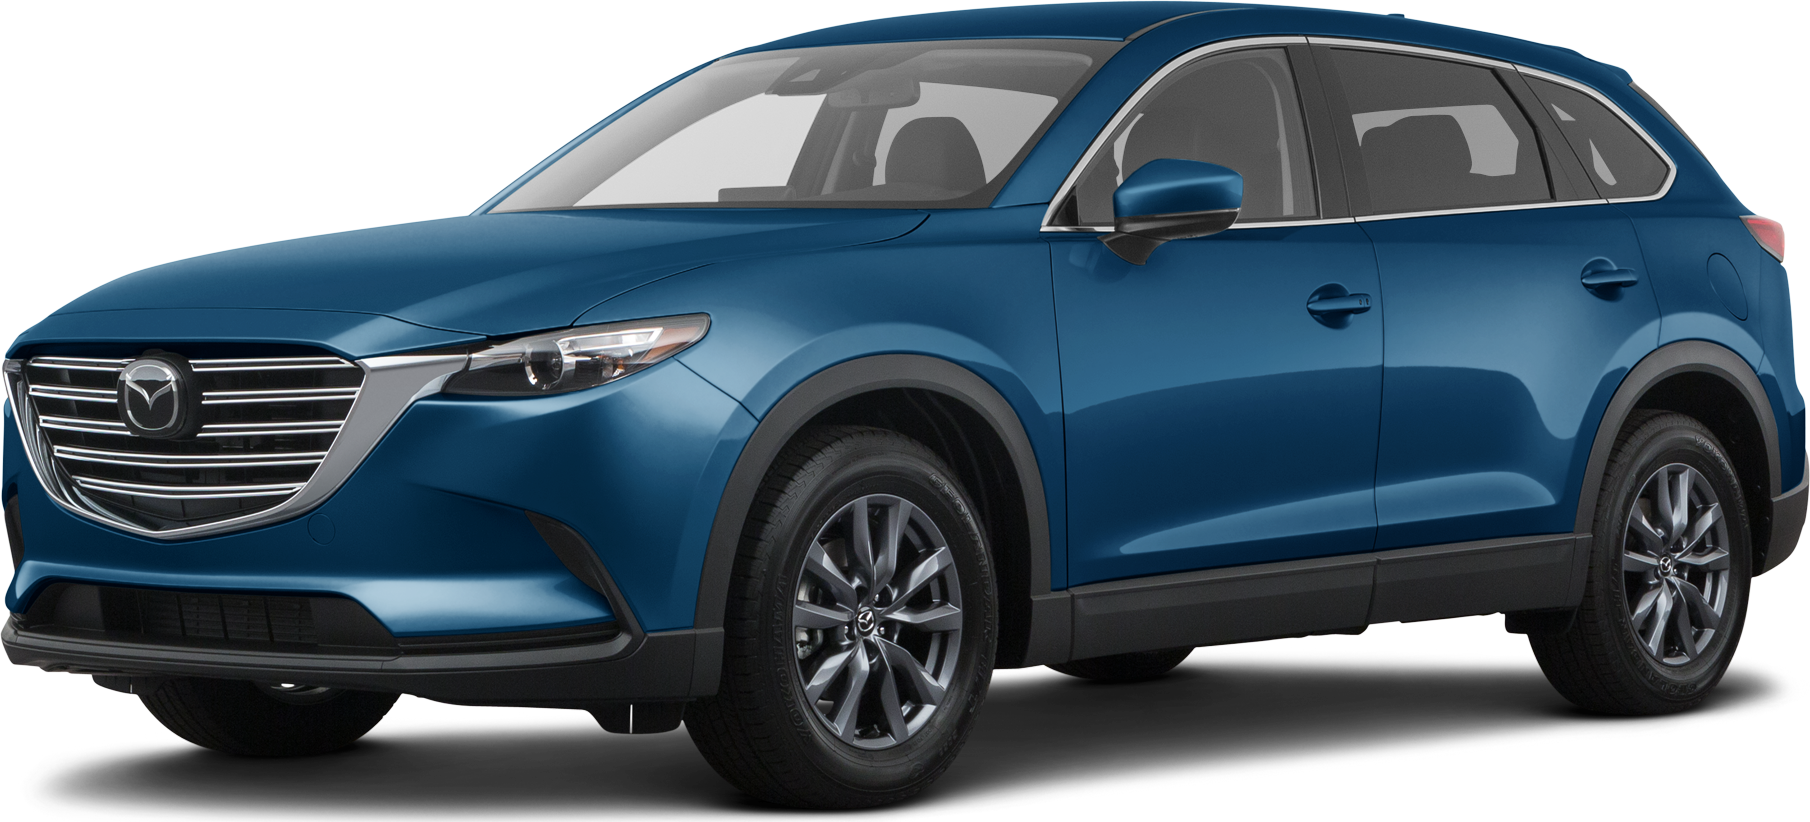 2019 Mazda Cx 5 Prices Reviews Pictures Kelley Blue Book